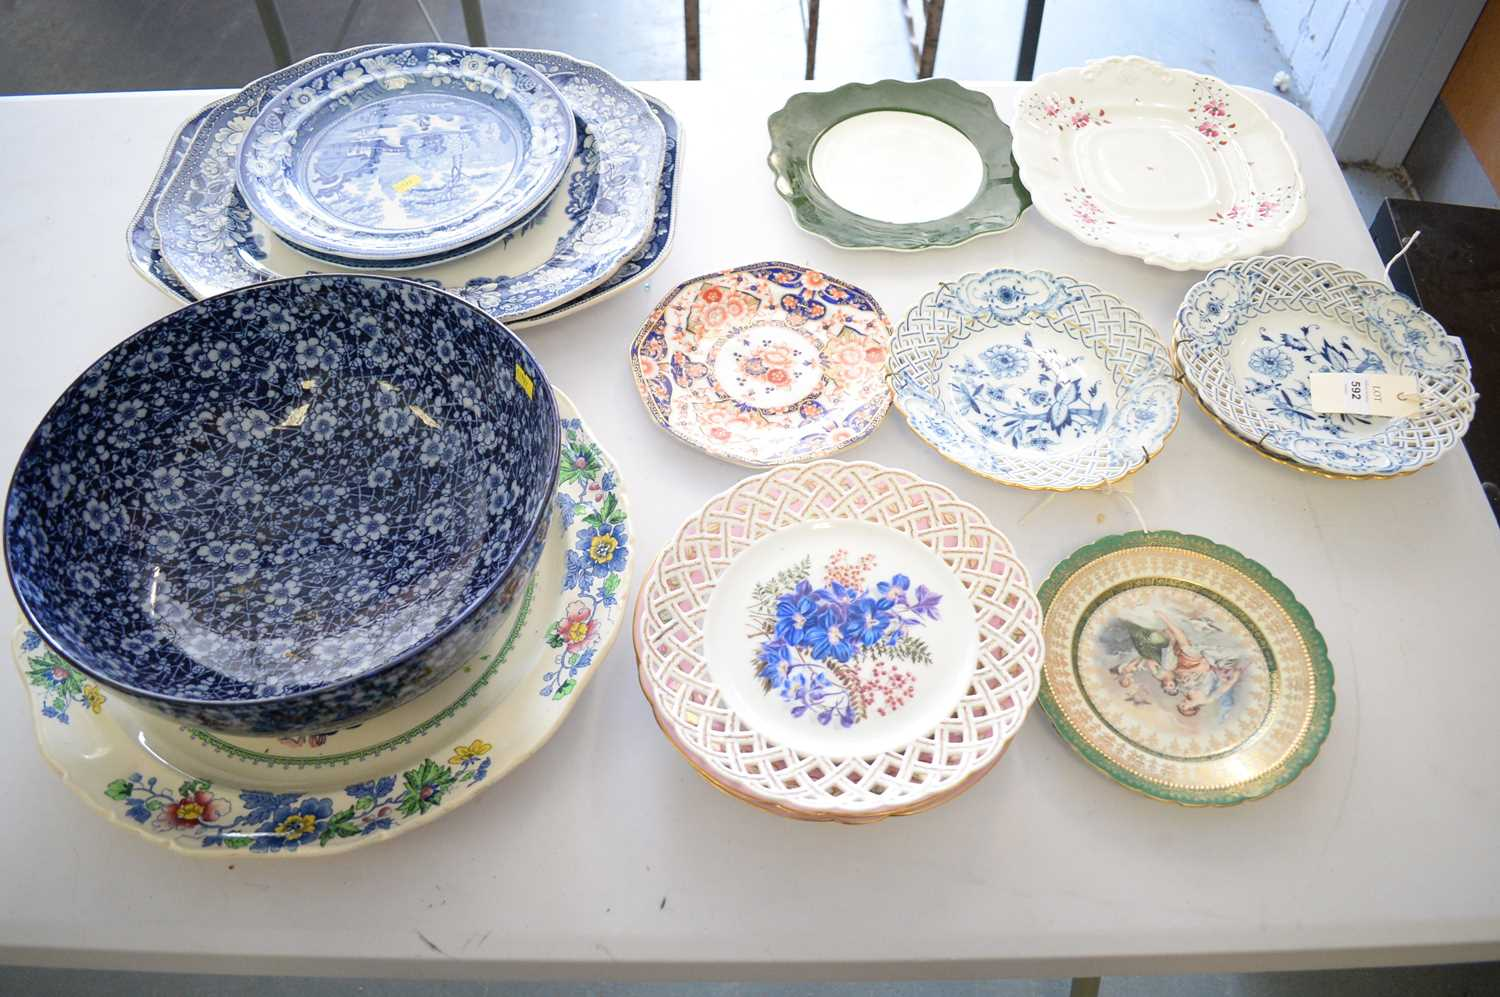 Ceramics by Doulton, Masons and others.